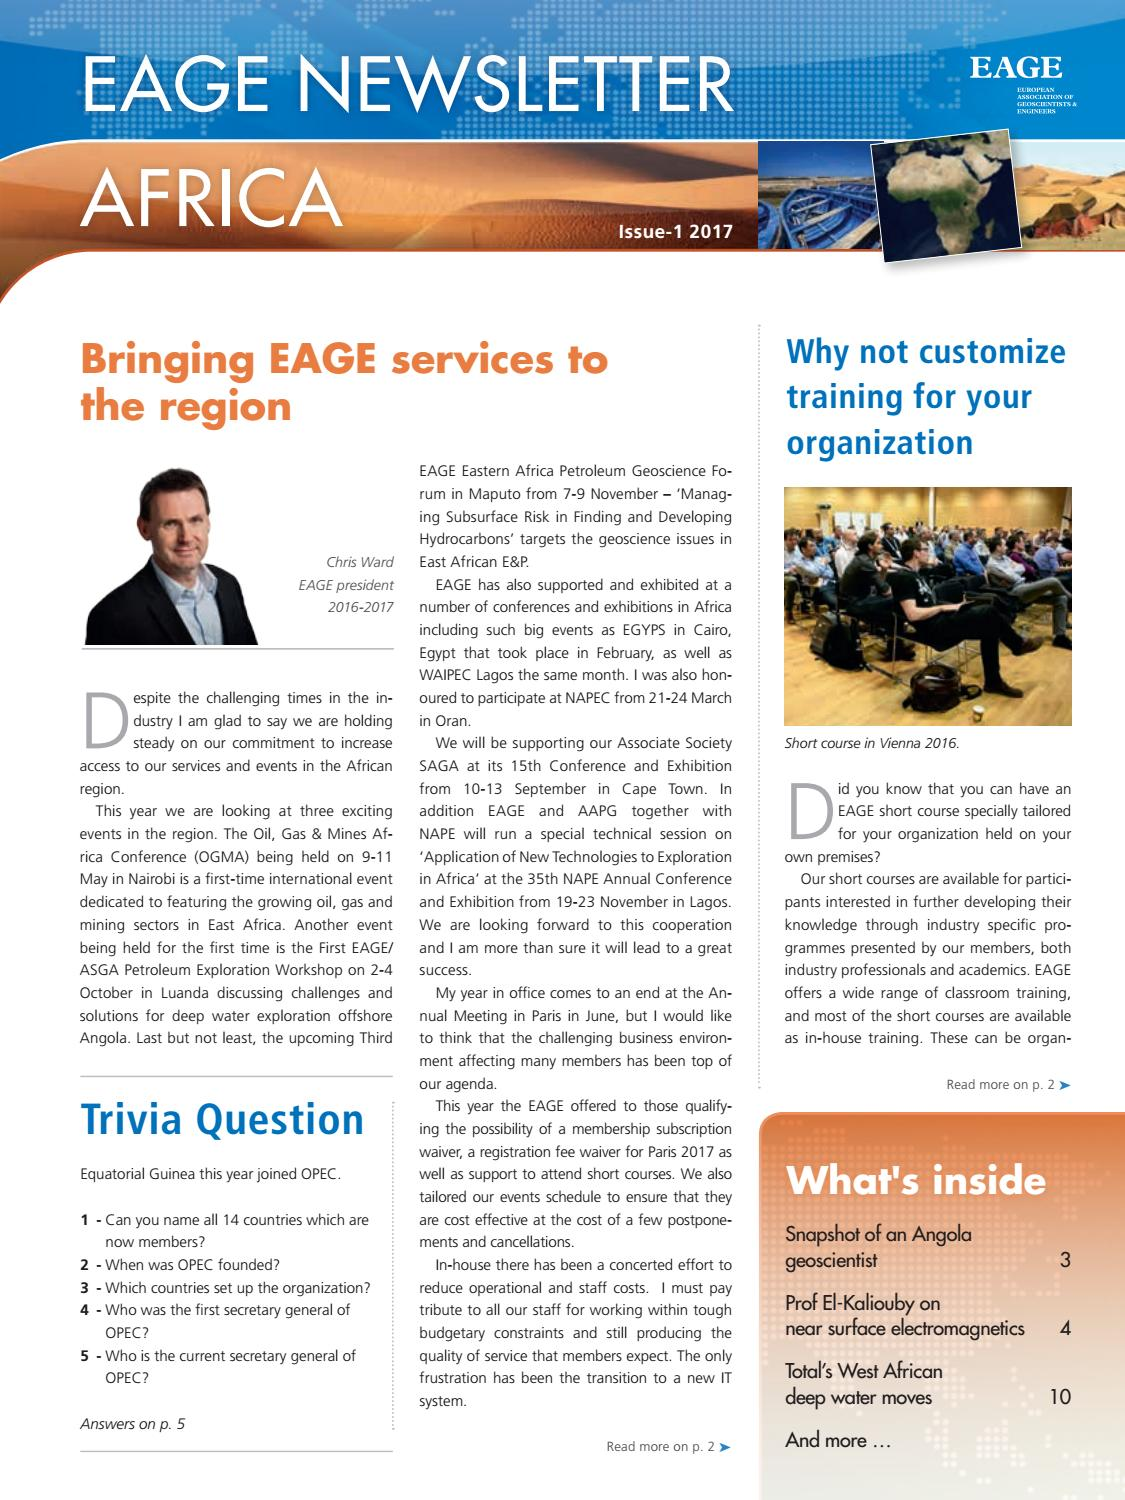 EAGE Newsletter Africa 2017 by EAGE - issuu